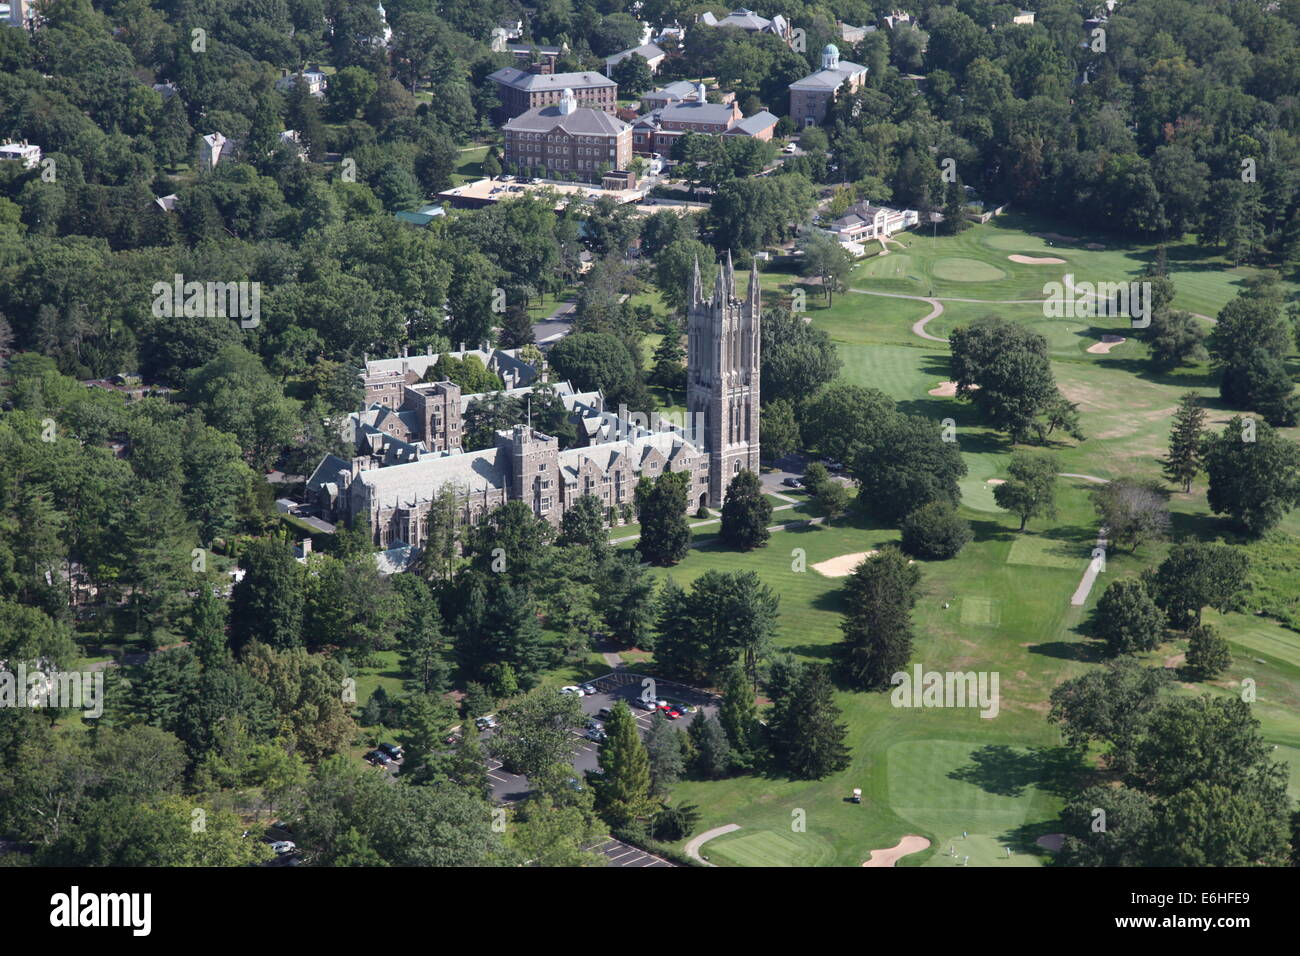 Aerial view of Princeton, New Jersey - Stock Image